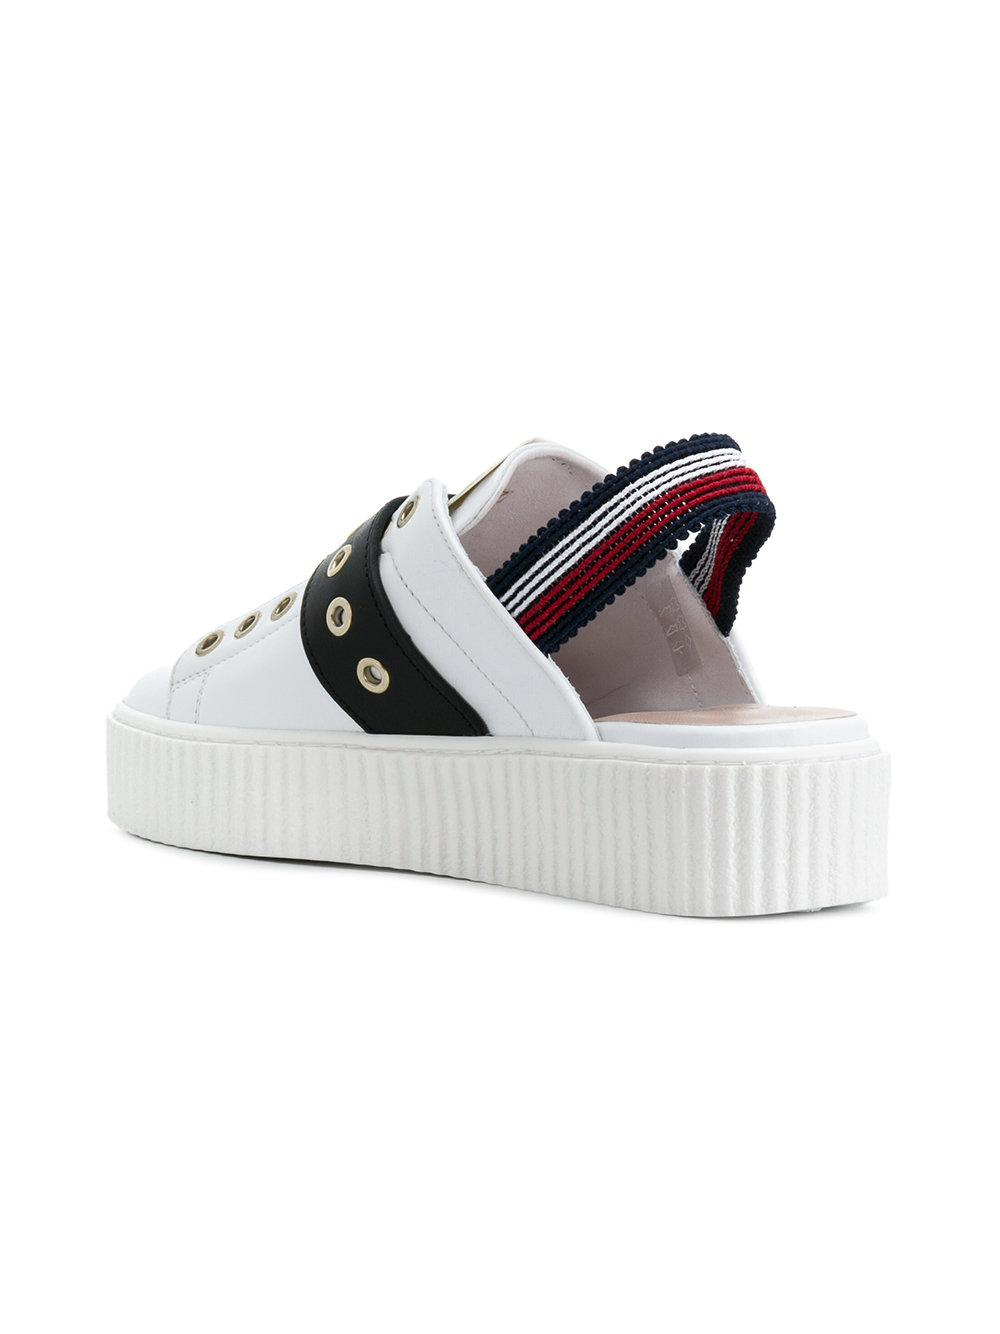 Tommy Hilfiger Chaussures WHITE CORPORATE Tommy Hilfiger Vidorreta Espadrilles 06400 Espadrilles Femme Metal Azul Vidorreta soldes Tommy Hilfiger Chaussures WHITE CORPORATE Tommy Hilfiger New Balance Chaussures enfant WR996 RBG New Balance soldes kPycY